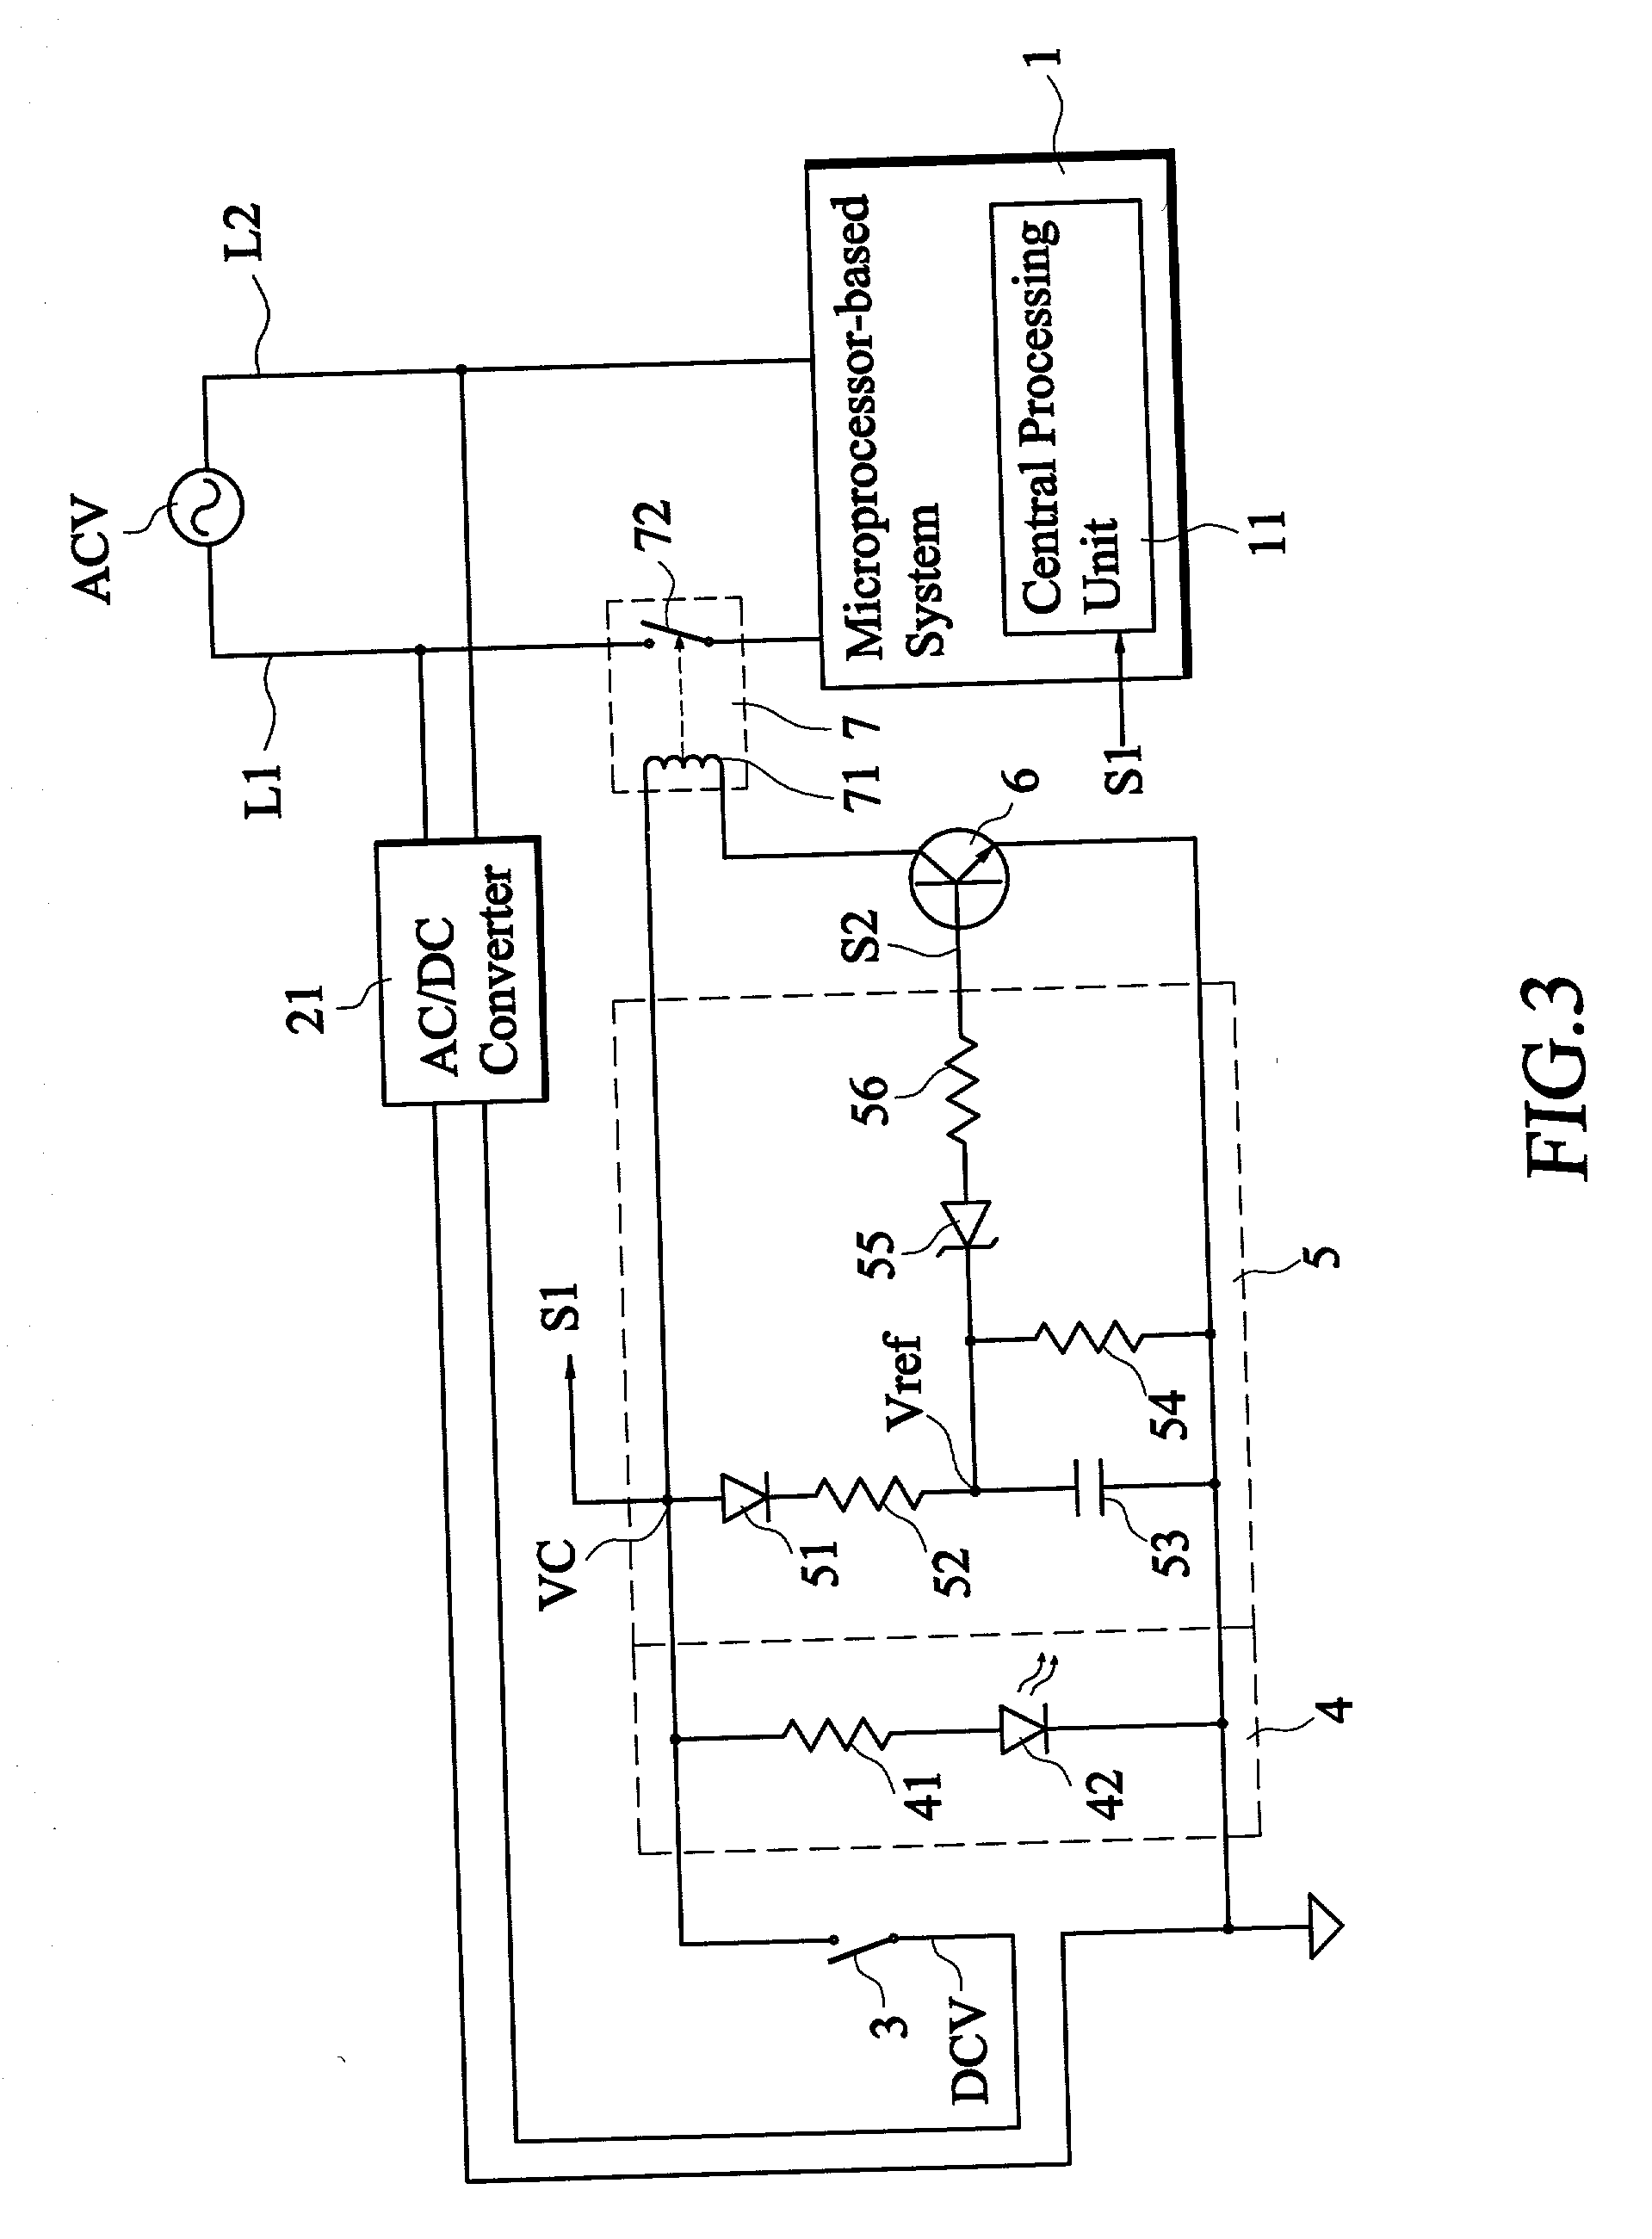 power control circuit with power